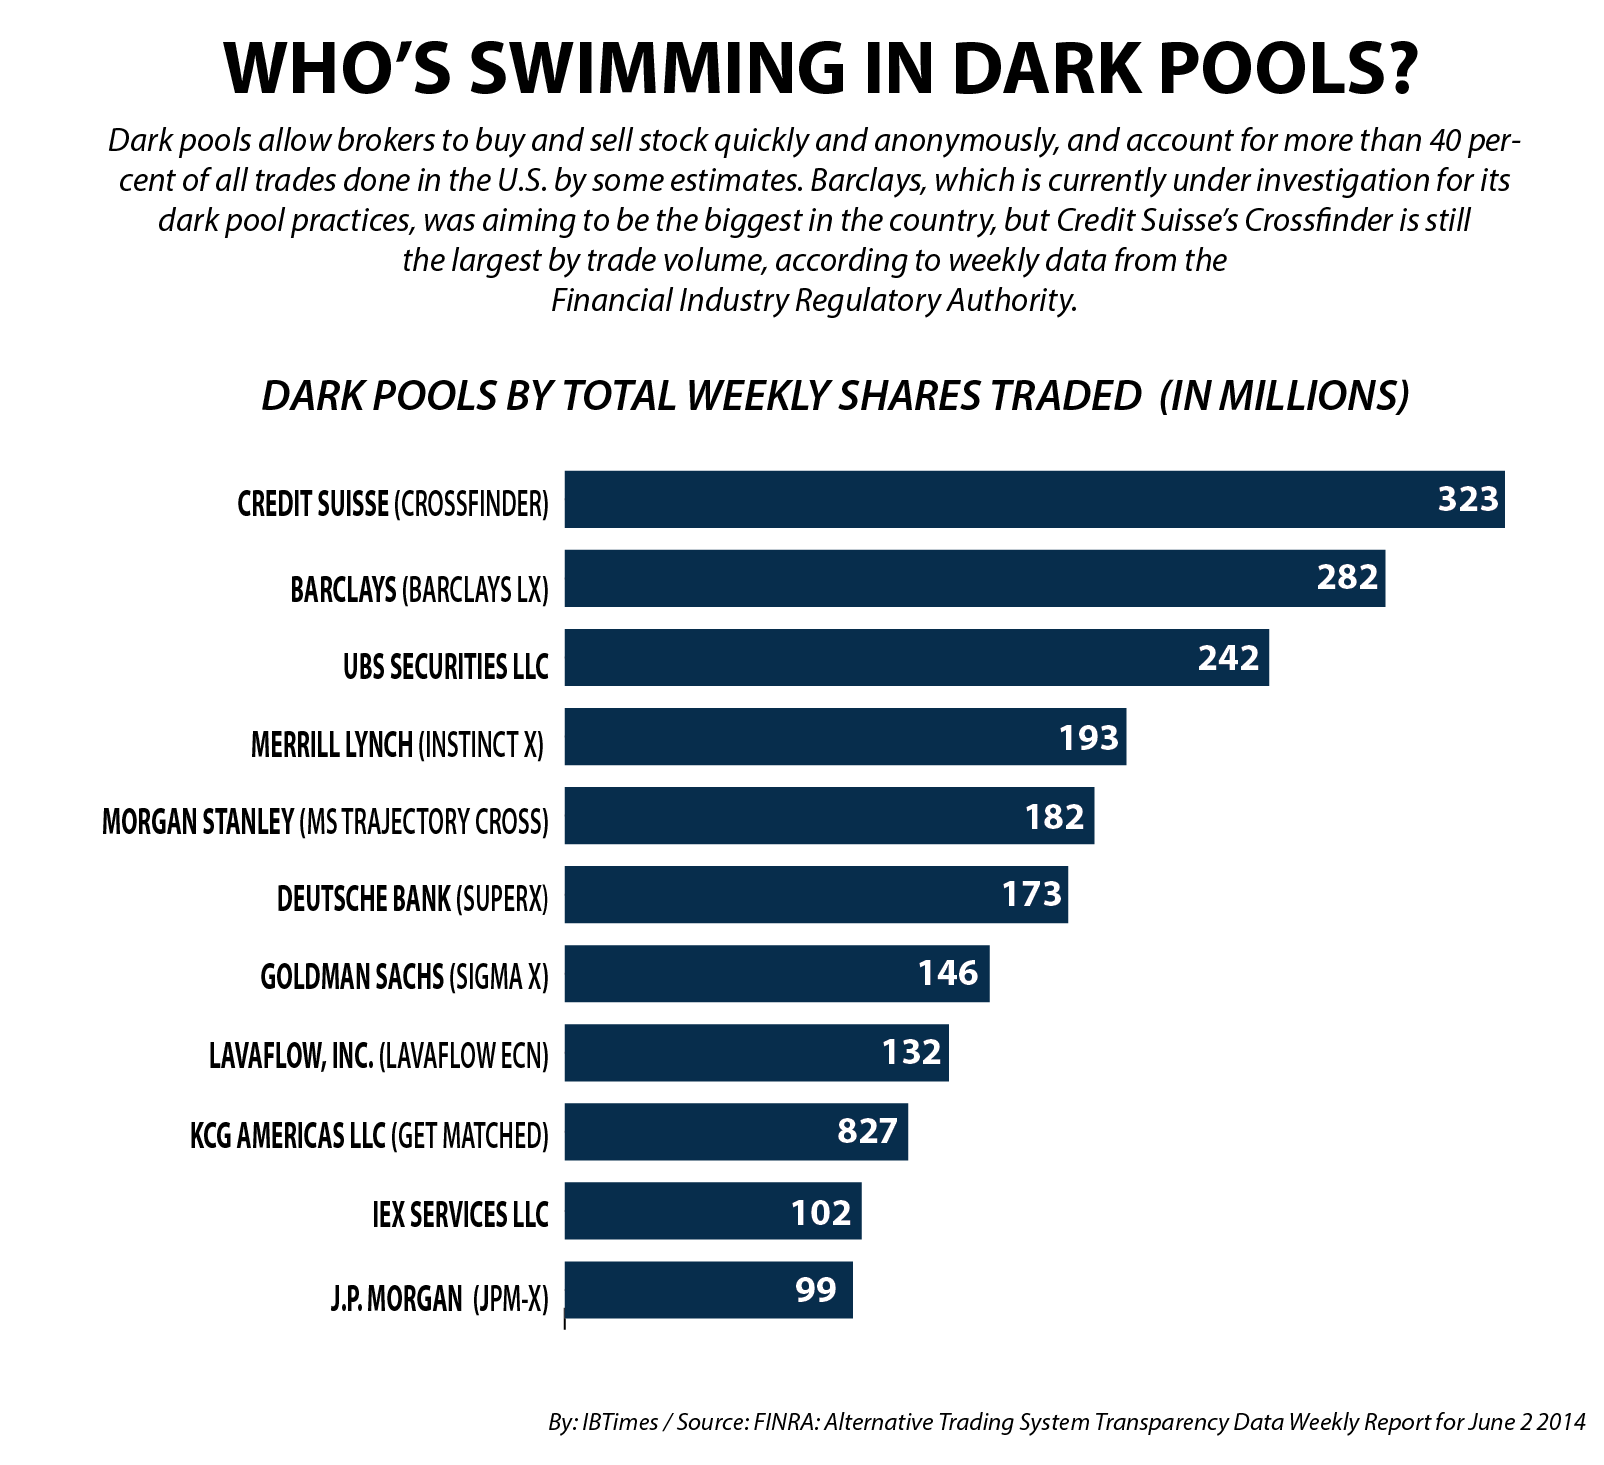 Top Ten Dark Pools